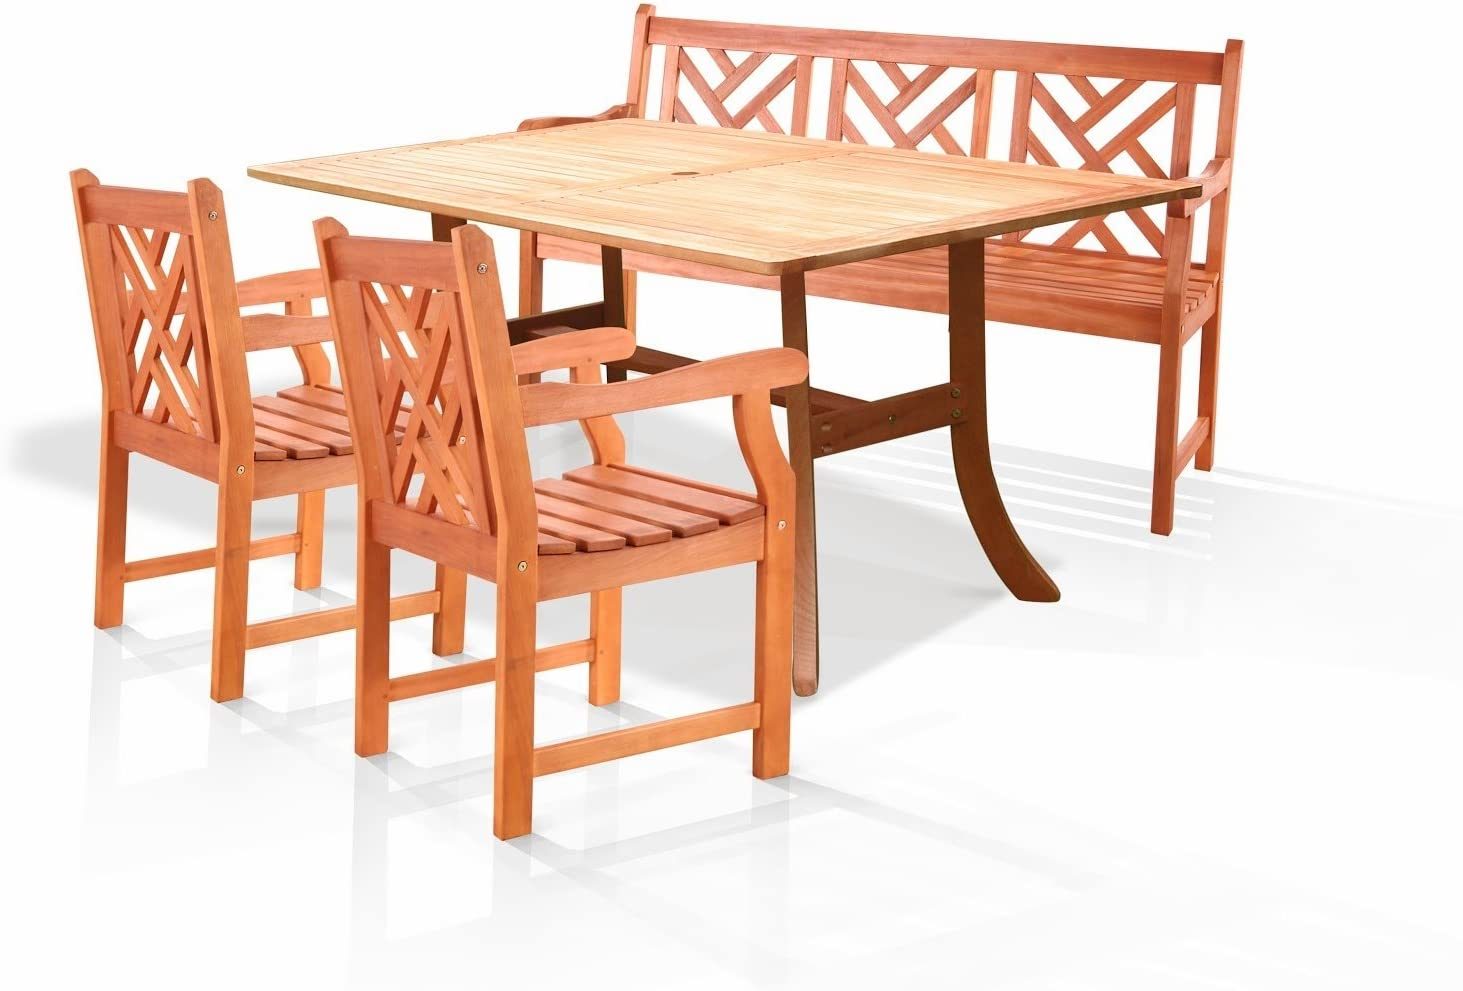 B001G5O8FQ VIFAH V187SET1 Outdoor Wood 4-Piece Dining Set, Natural Wood Finish, 59 by 36 by 29-Inch 714YXsQVQ6L.SL1500_